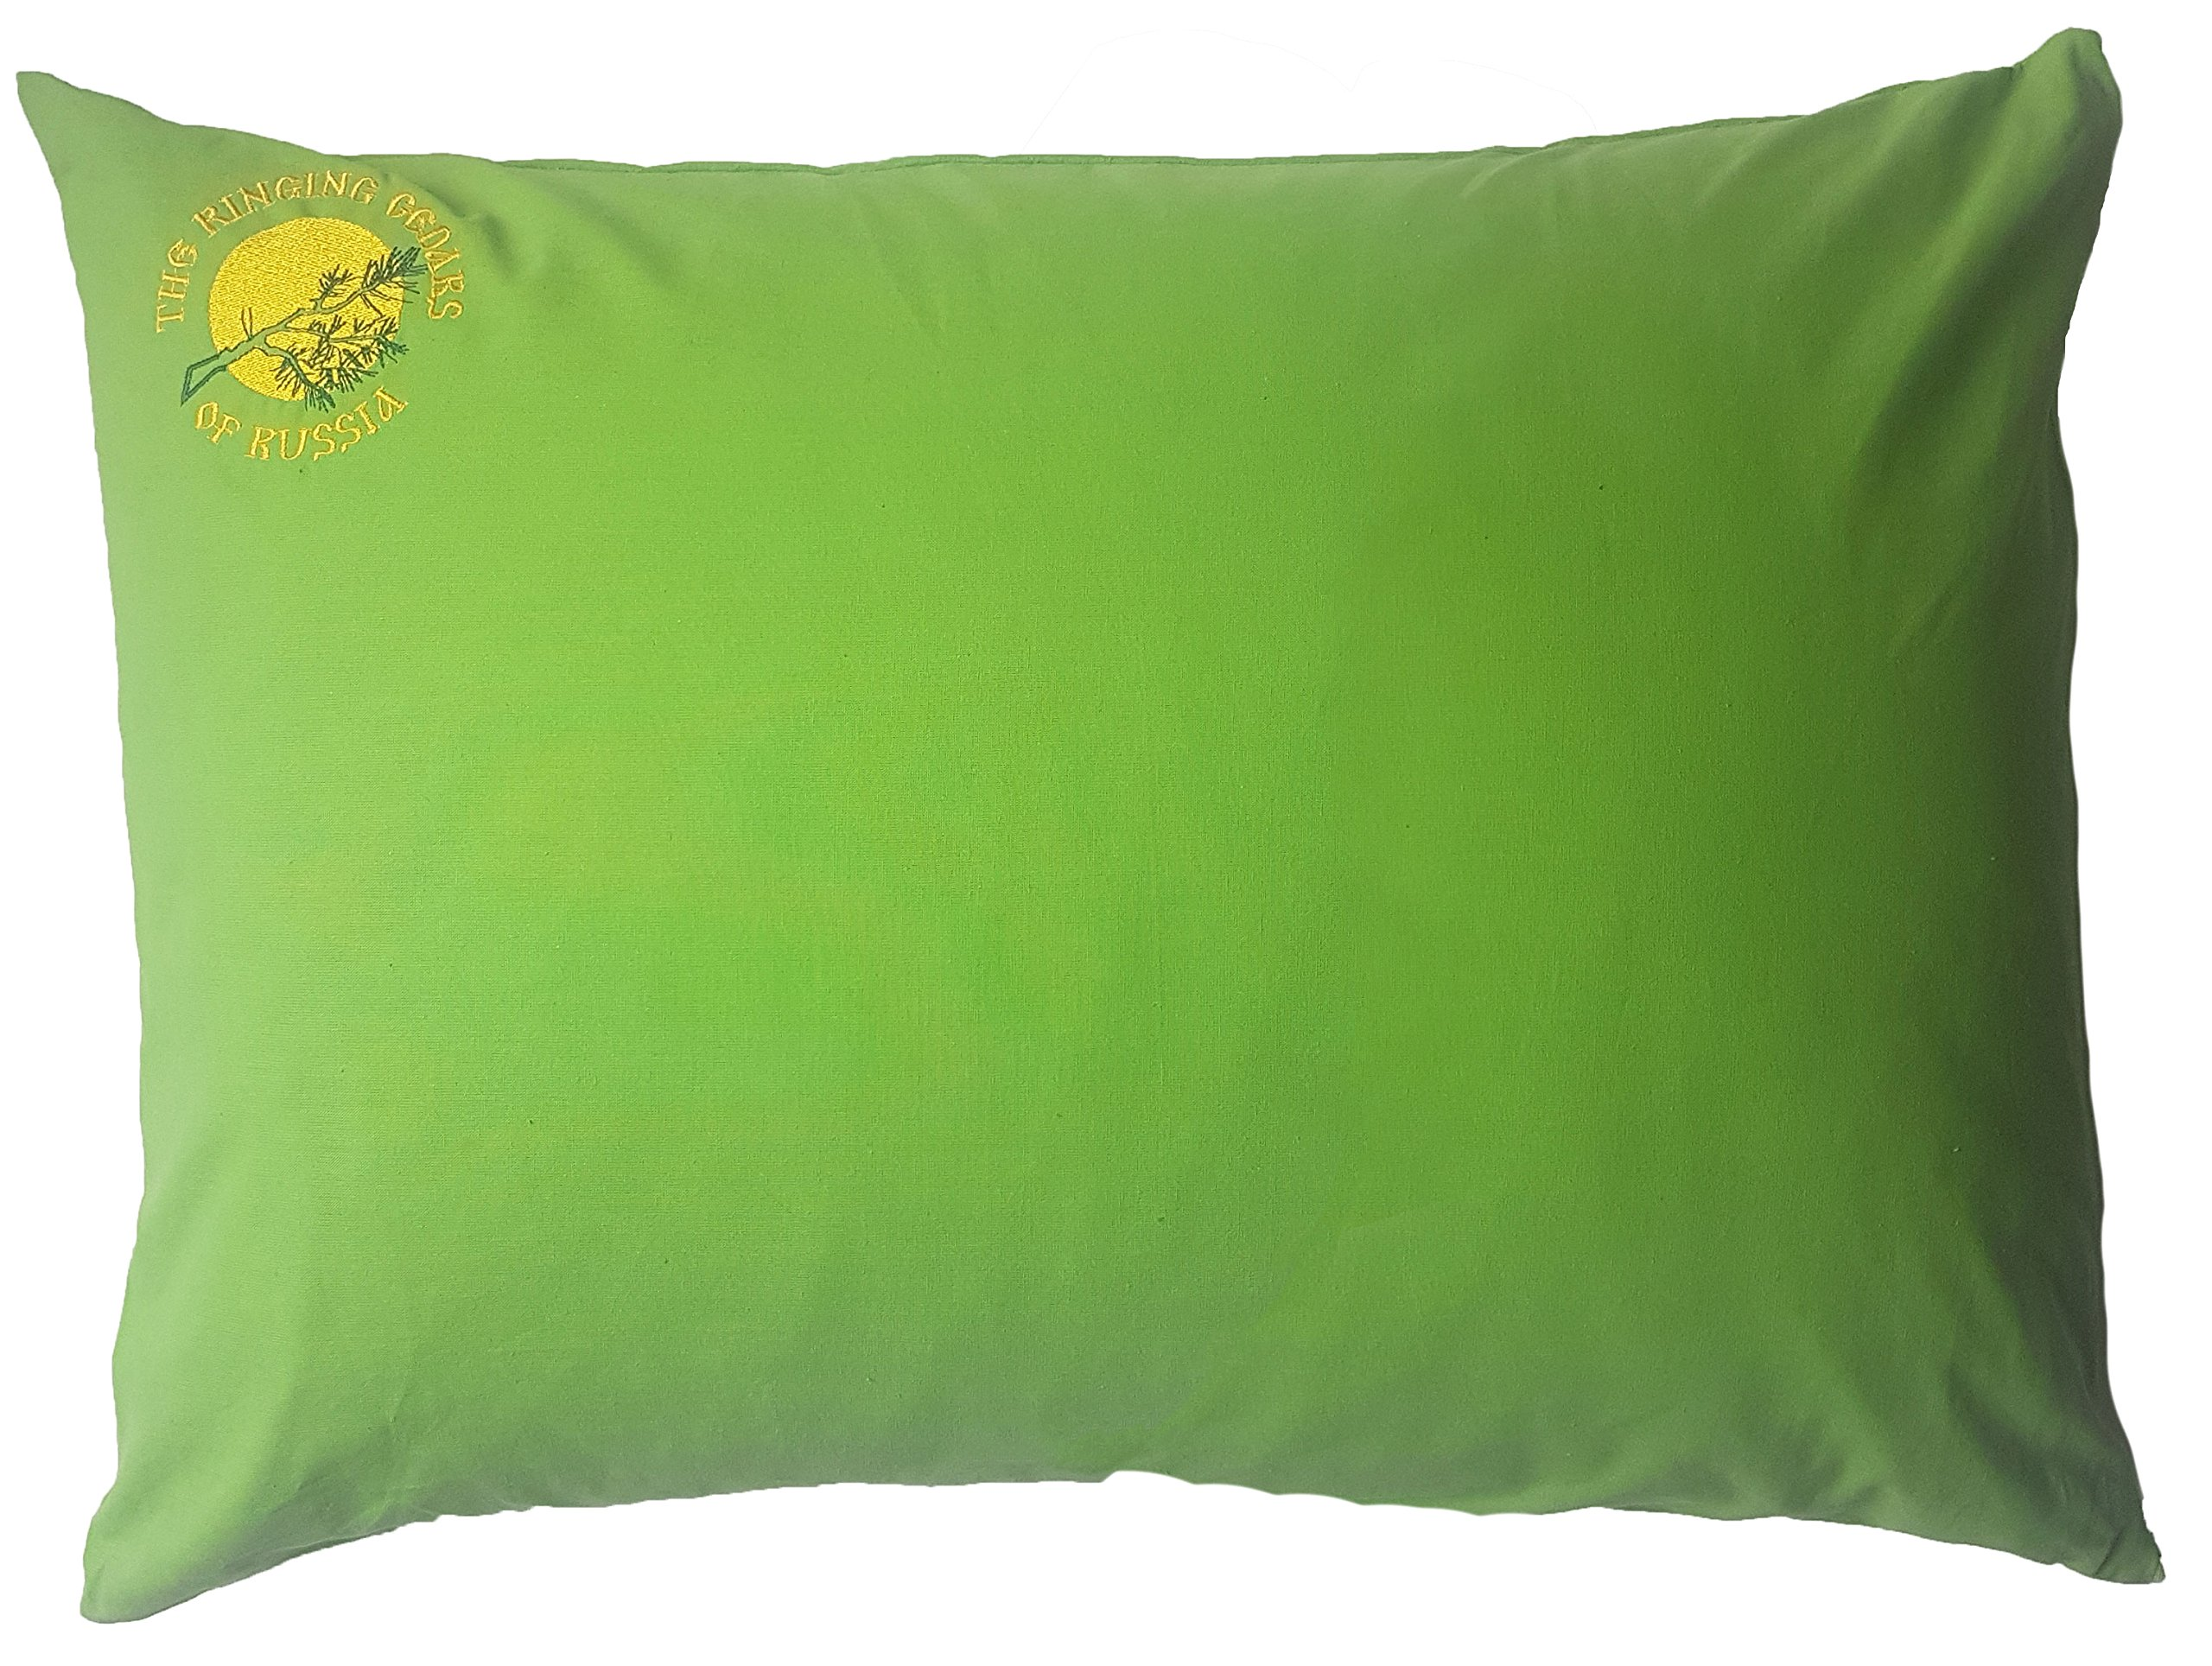 CEDAR PILLOW FROM RINGING CEDARS OF RUSSIA - Made from a thoroughly purified film of cedar nuts, the cedar pillow has remarkable orthopedic properties. Cedar nut oil, pine nut oil, pine nuts.